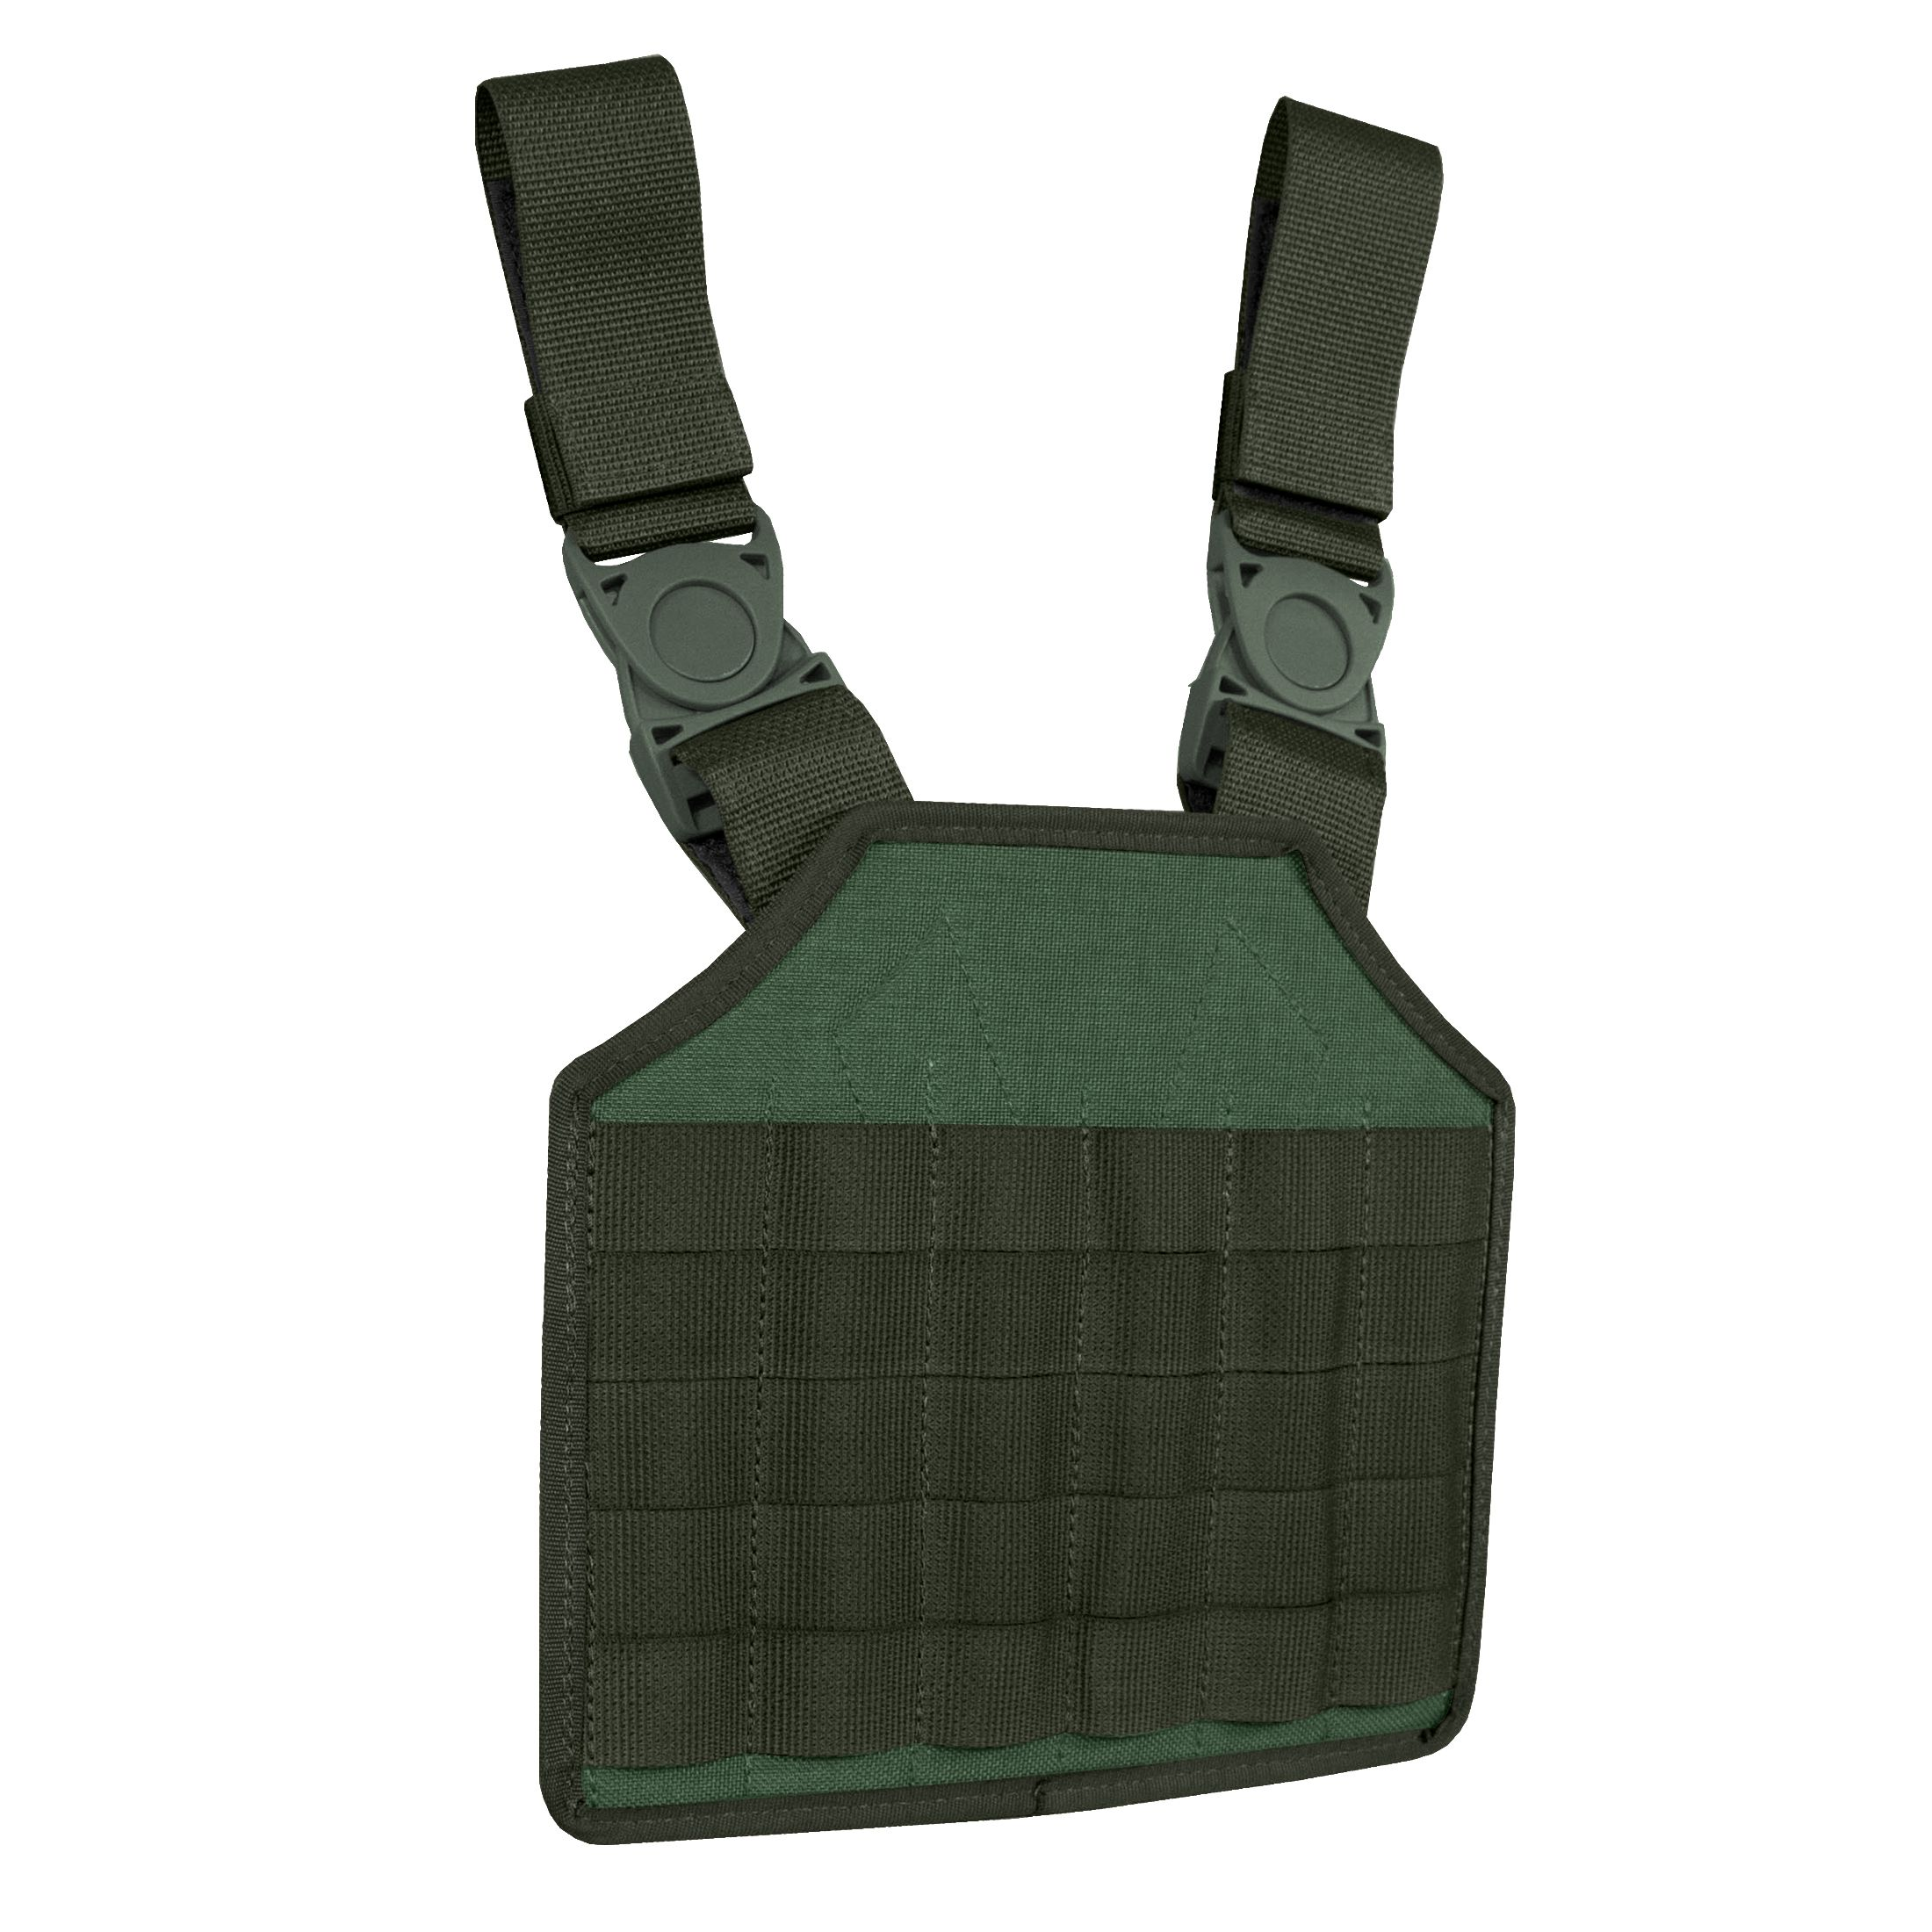 Russian army military universal tactical holster Stich Profi black